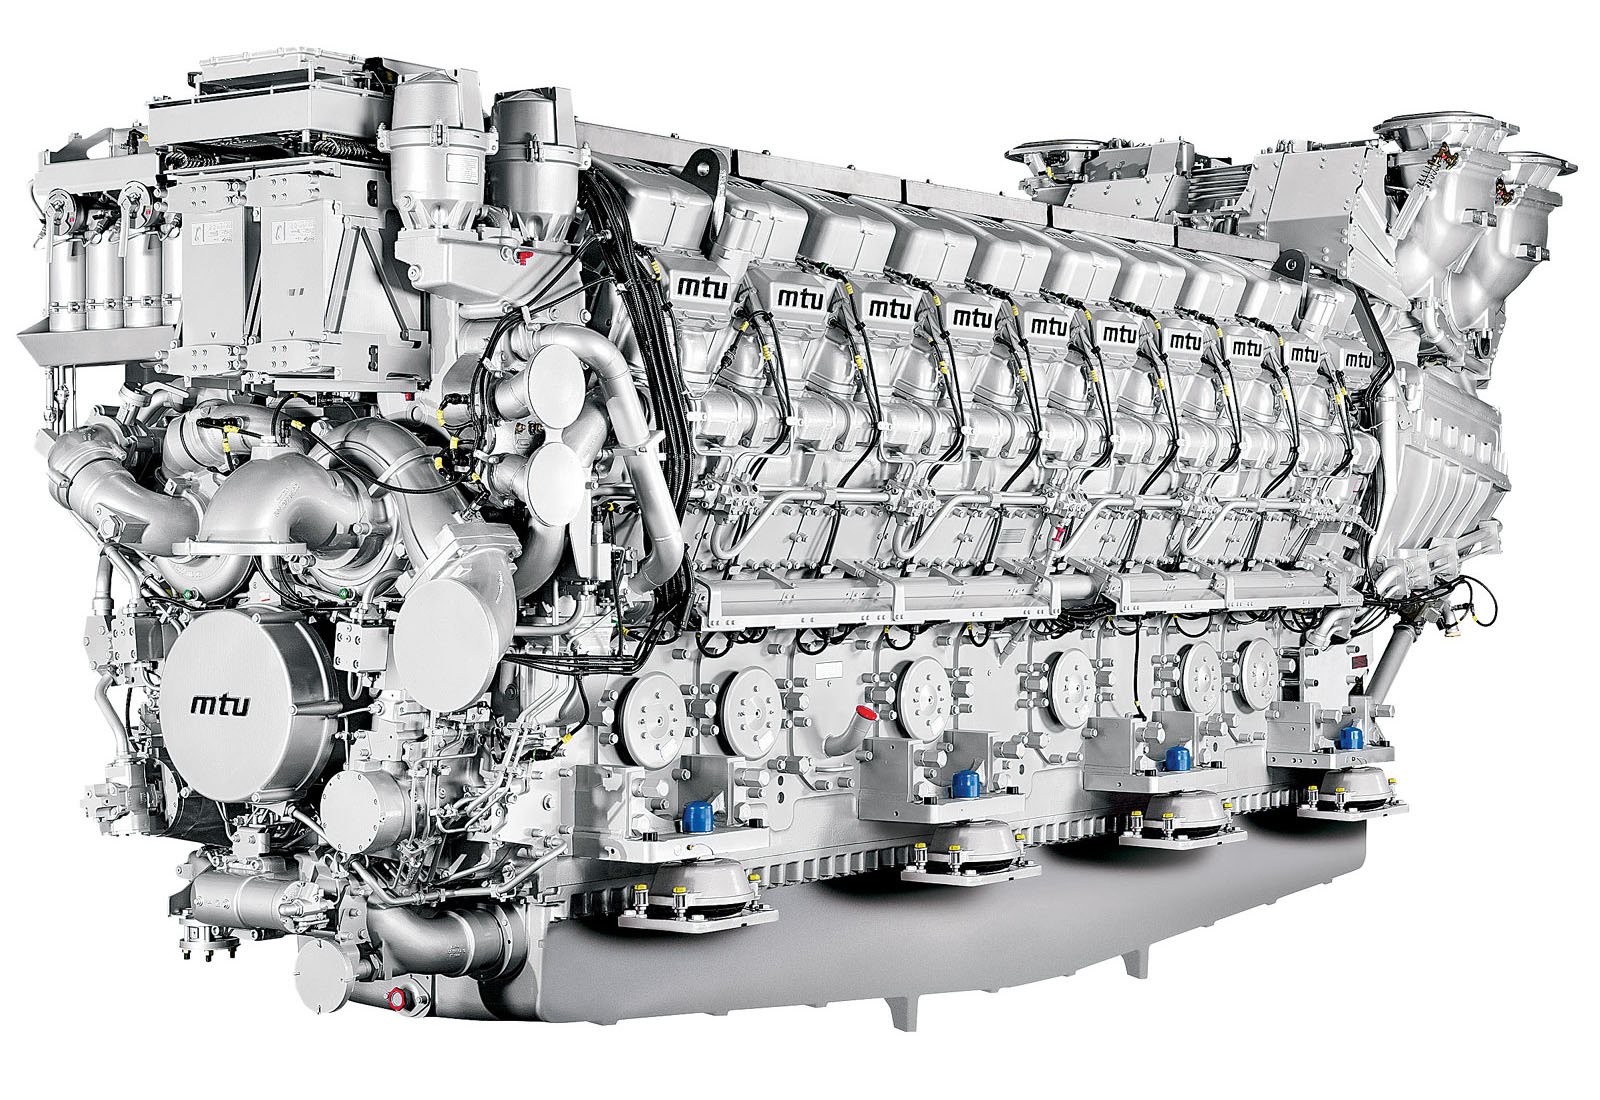 1002dp 02USS independence LCS 2MTU 20V 8000 M90 diesel engine